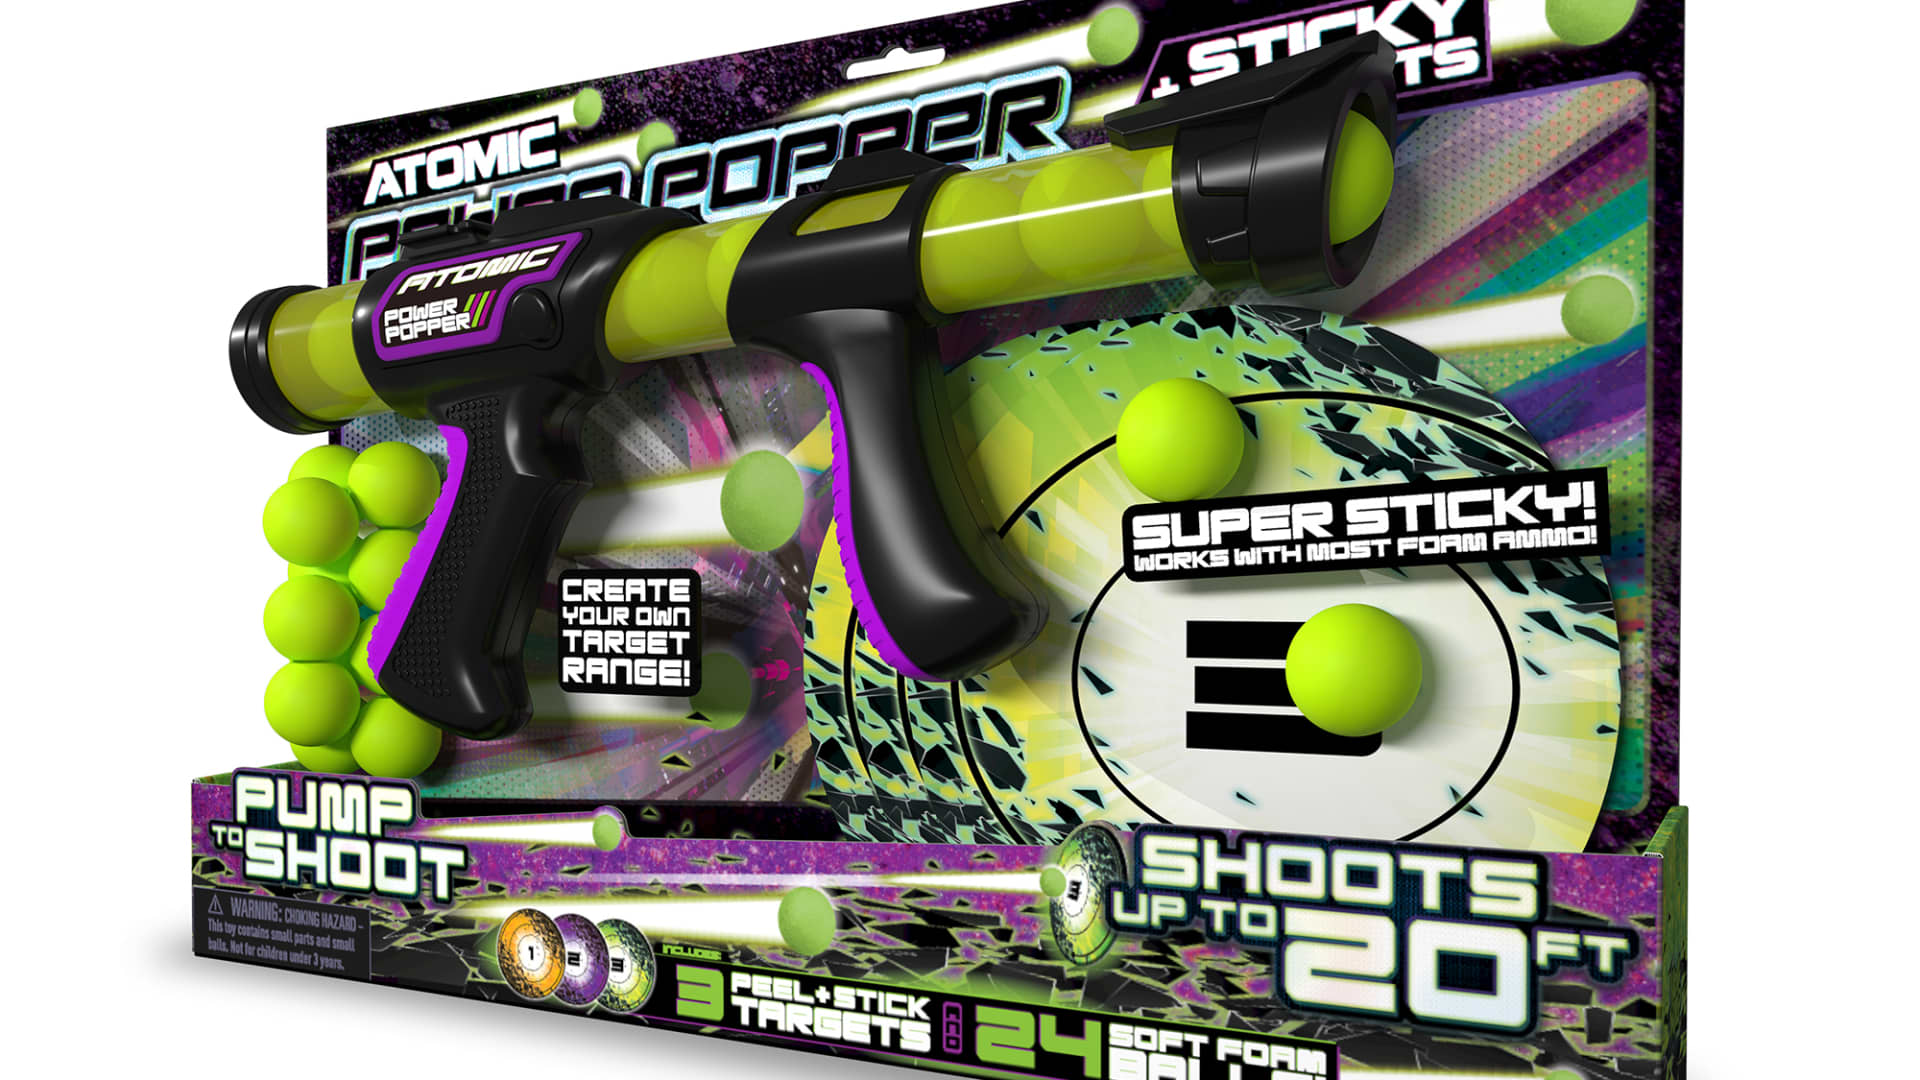 Atomic Power Popper with Sticky Targets from Wild Hog